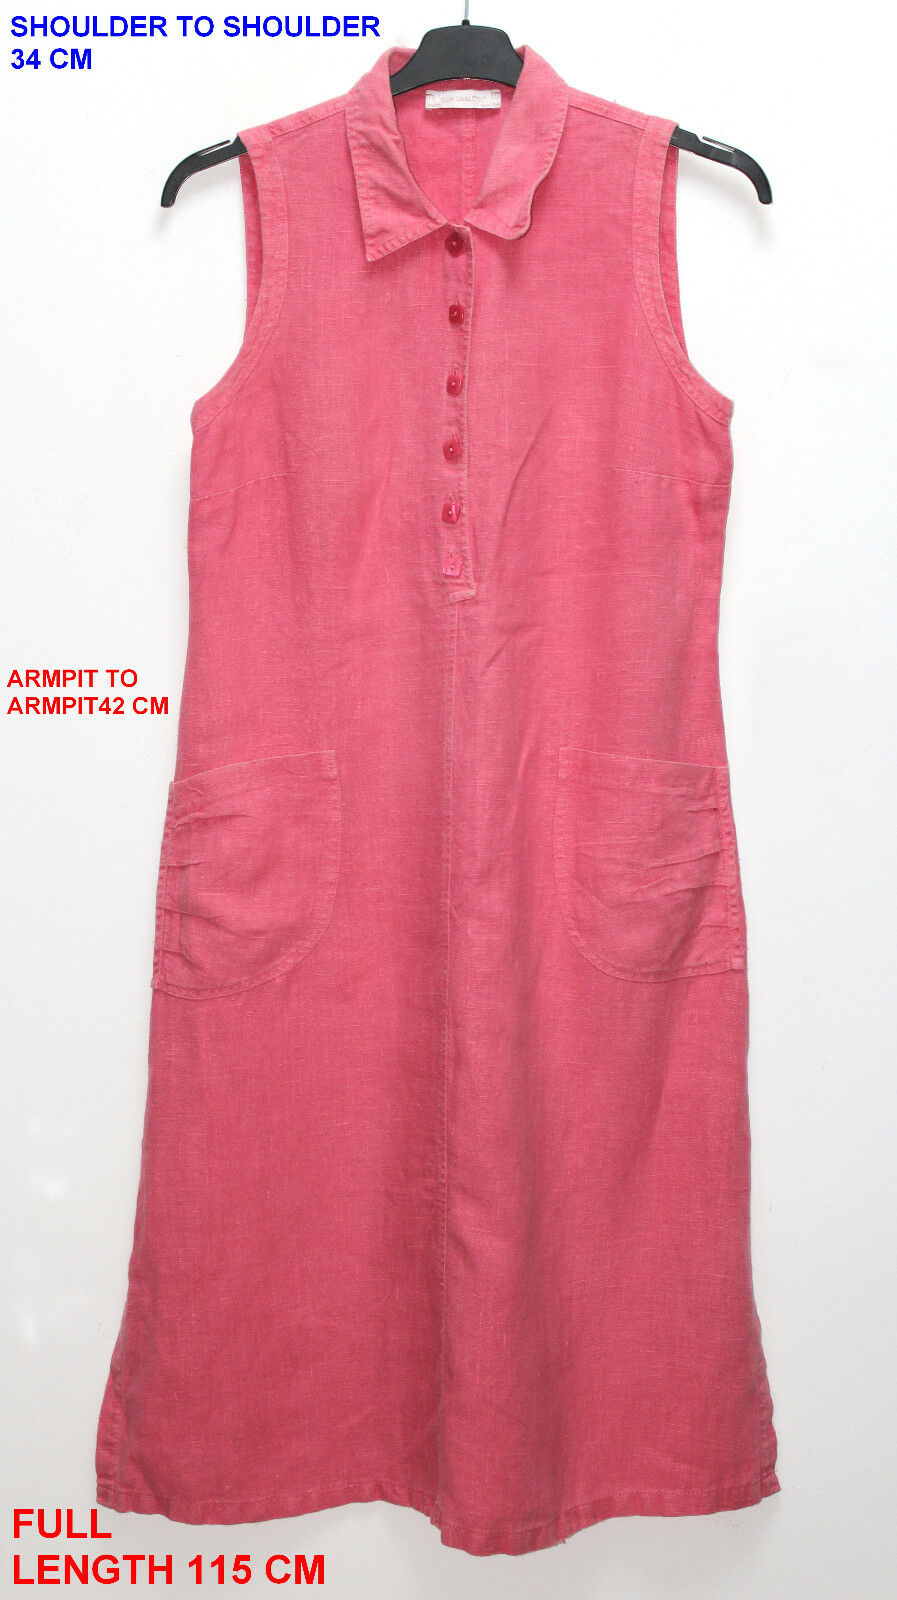 ELISA CAVALETTI LADIES LADIES LADIES WOMAN DRESS TUNIC SLEEVELESS SIZE S LENGTH pink PINK COL dba021